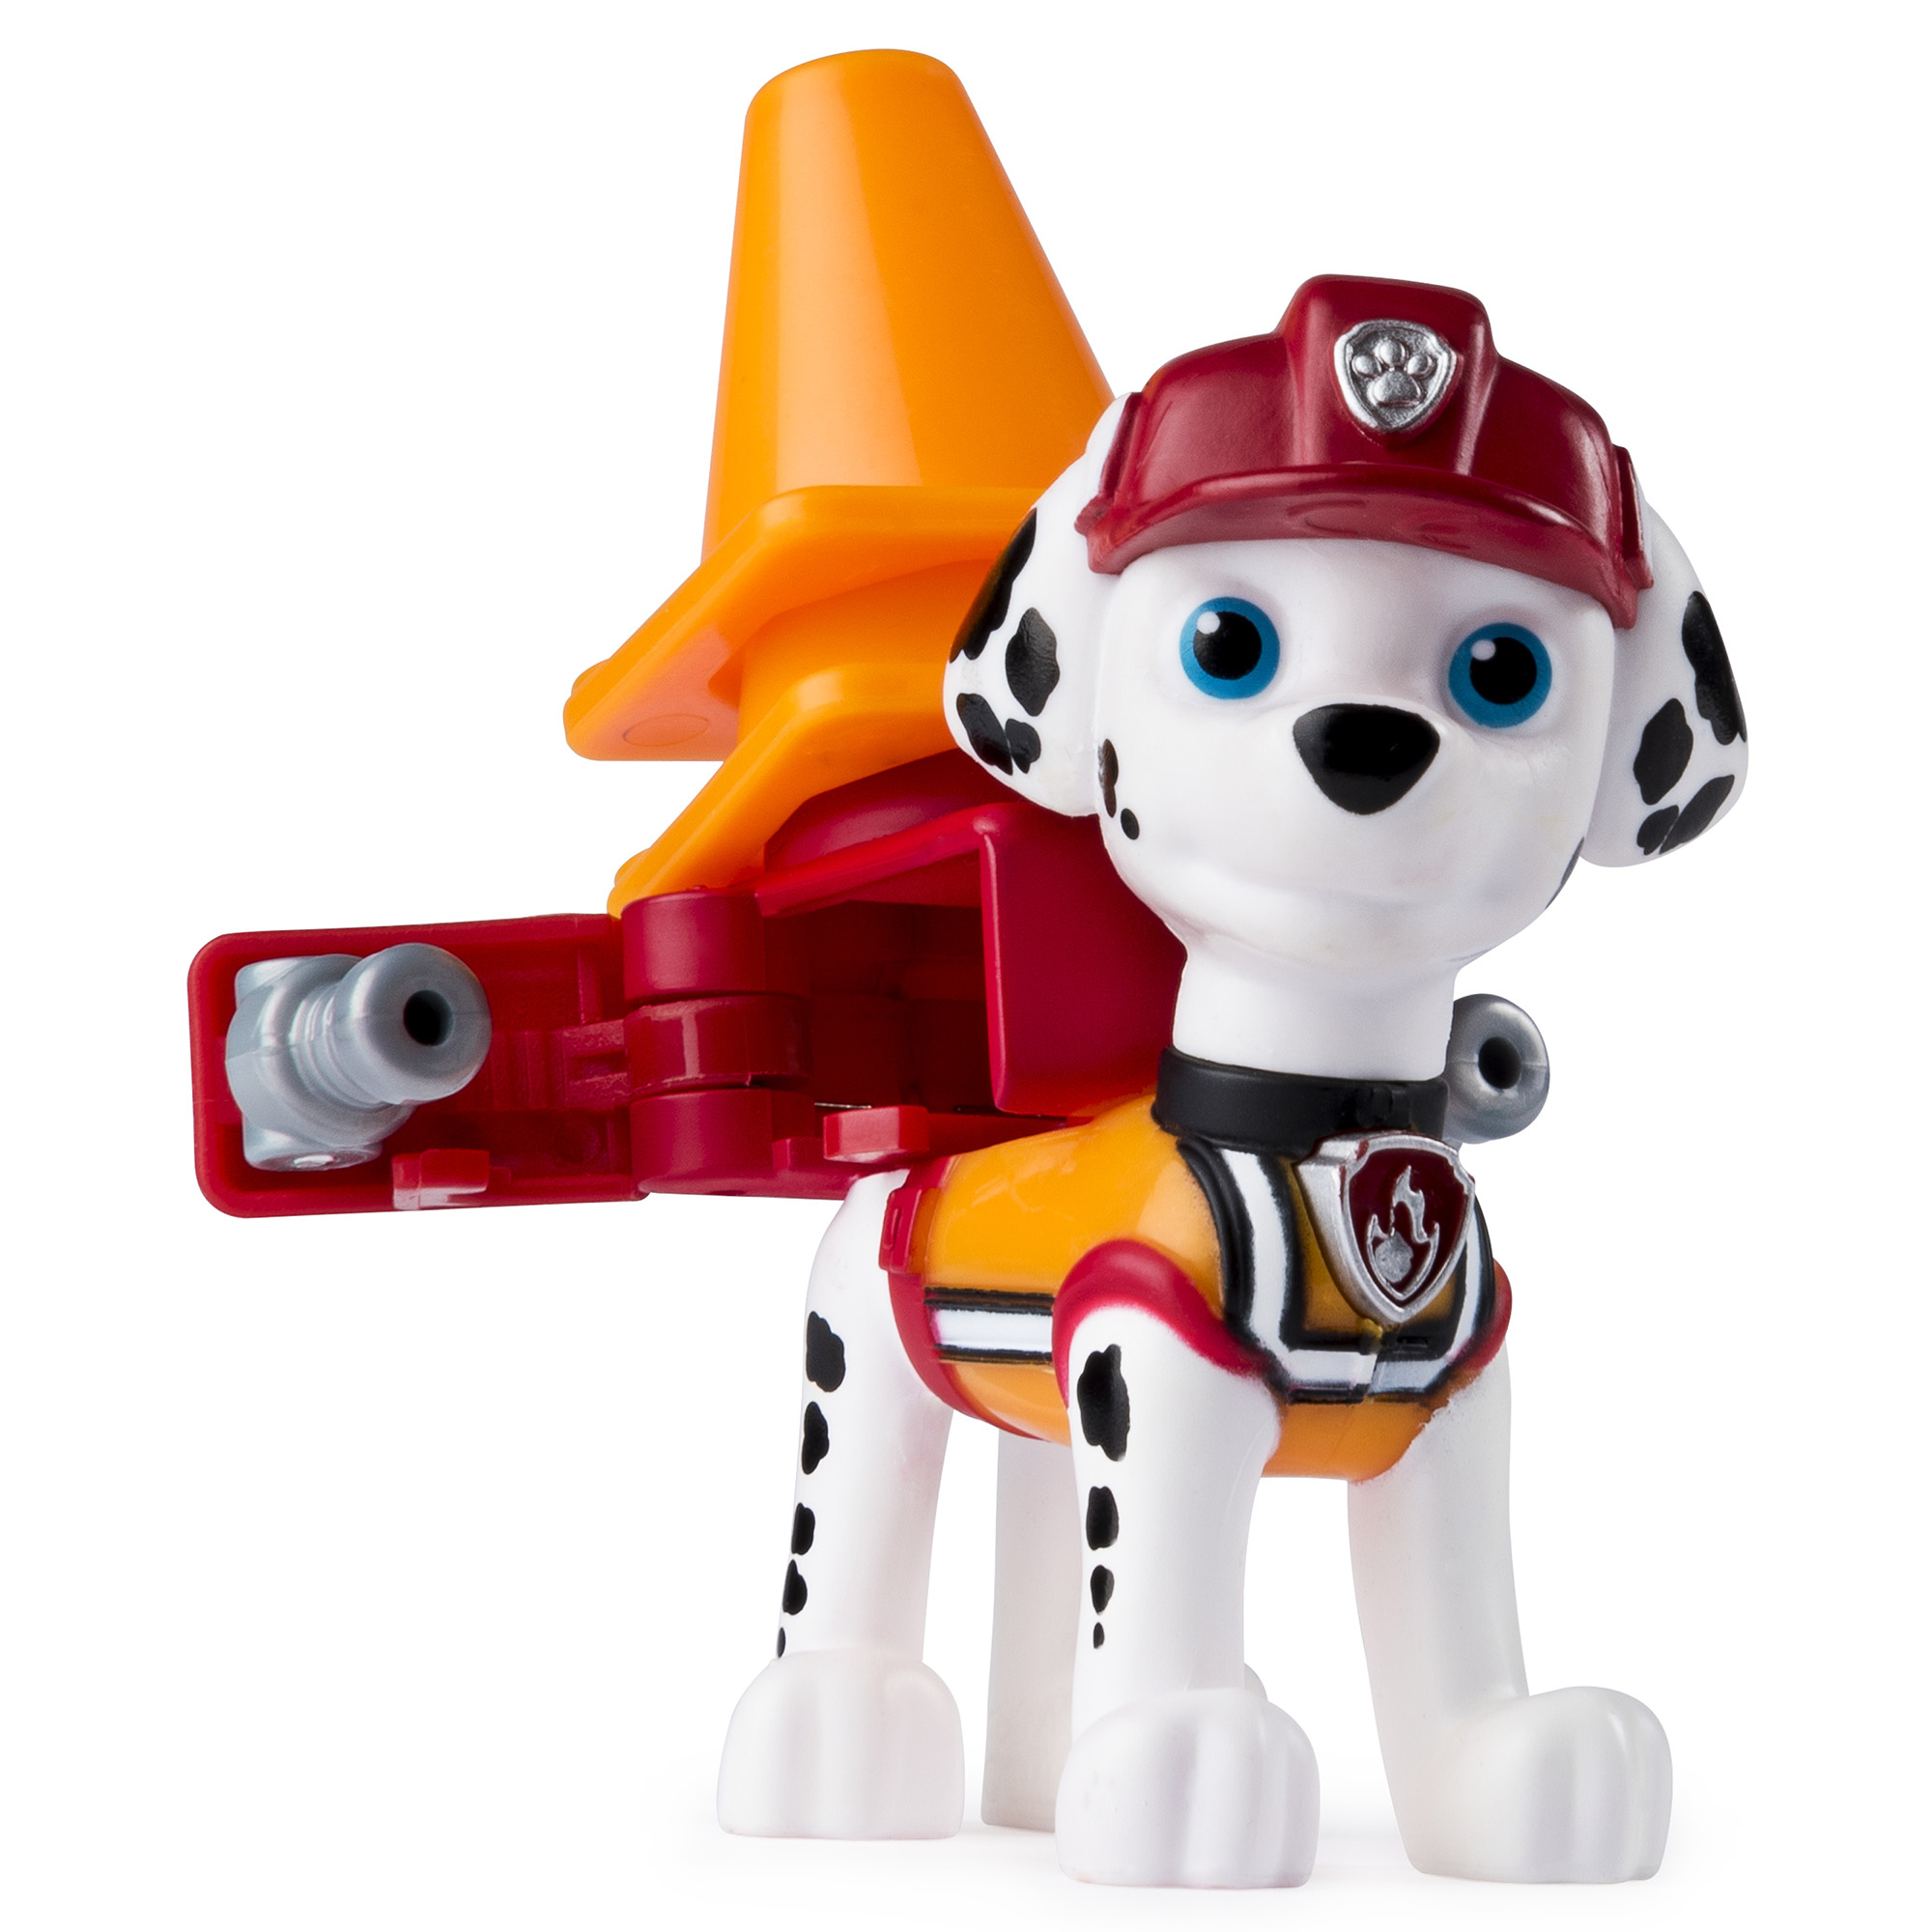 Picture of PAW Patrol Construction Pup Figure Assortment